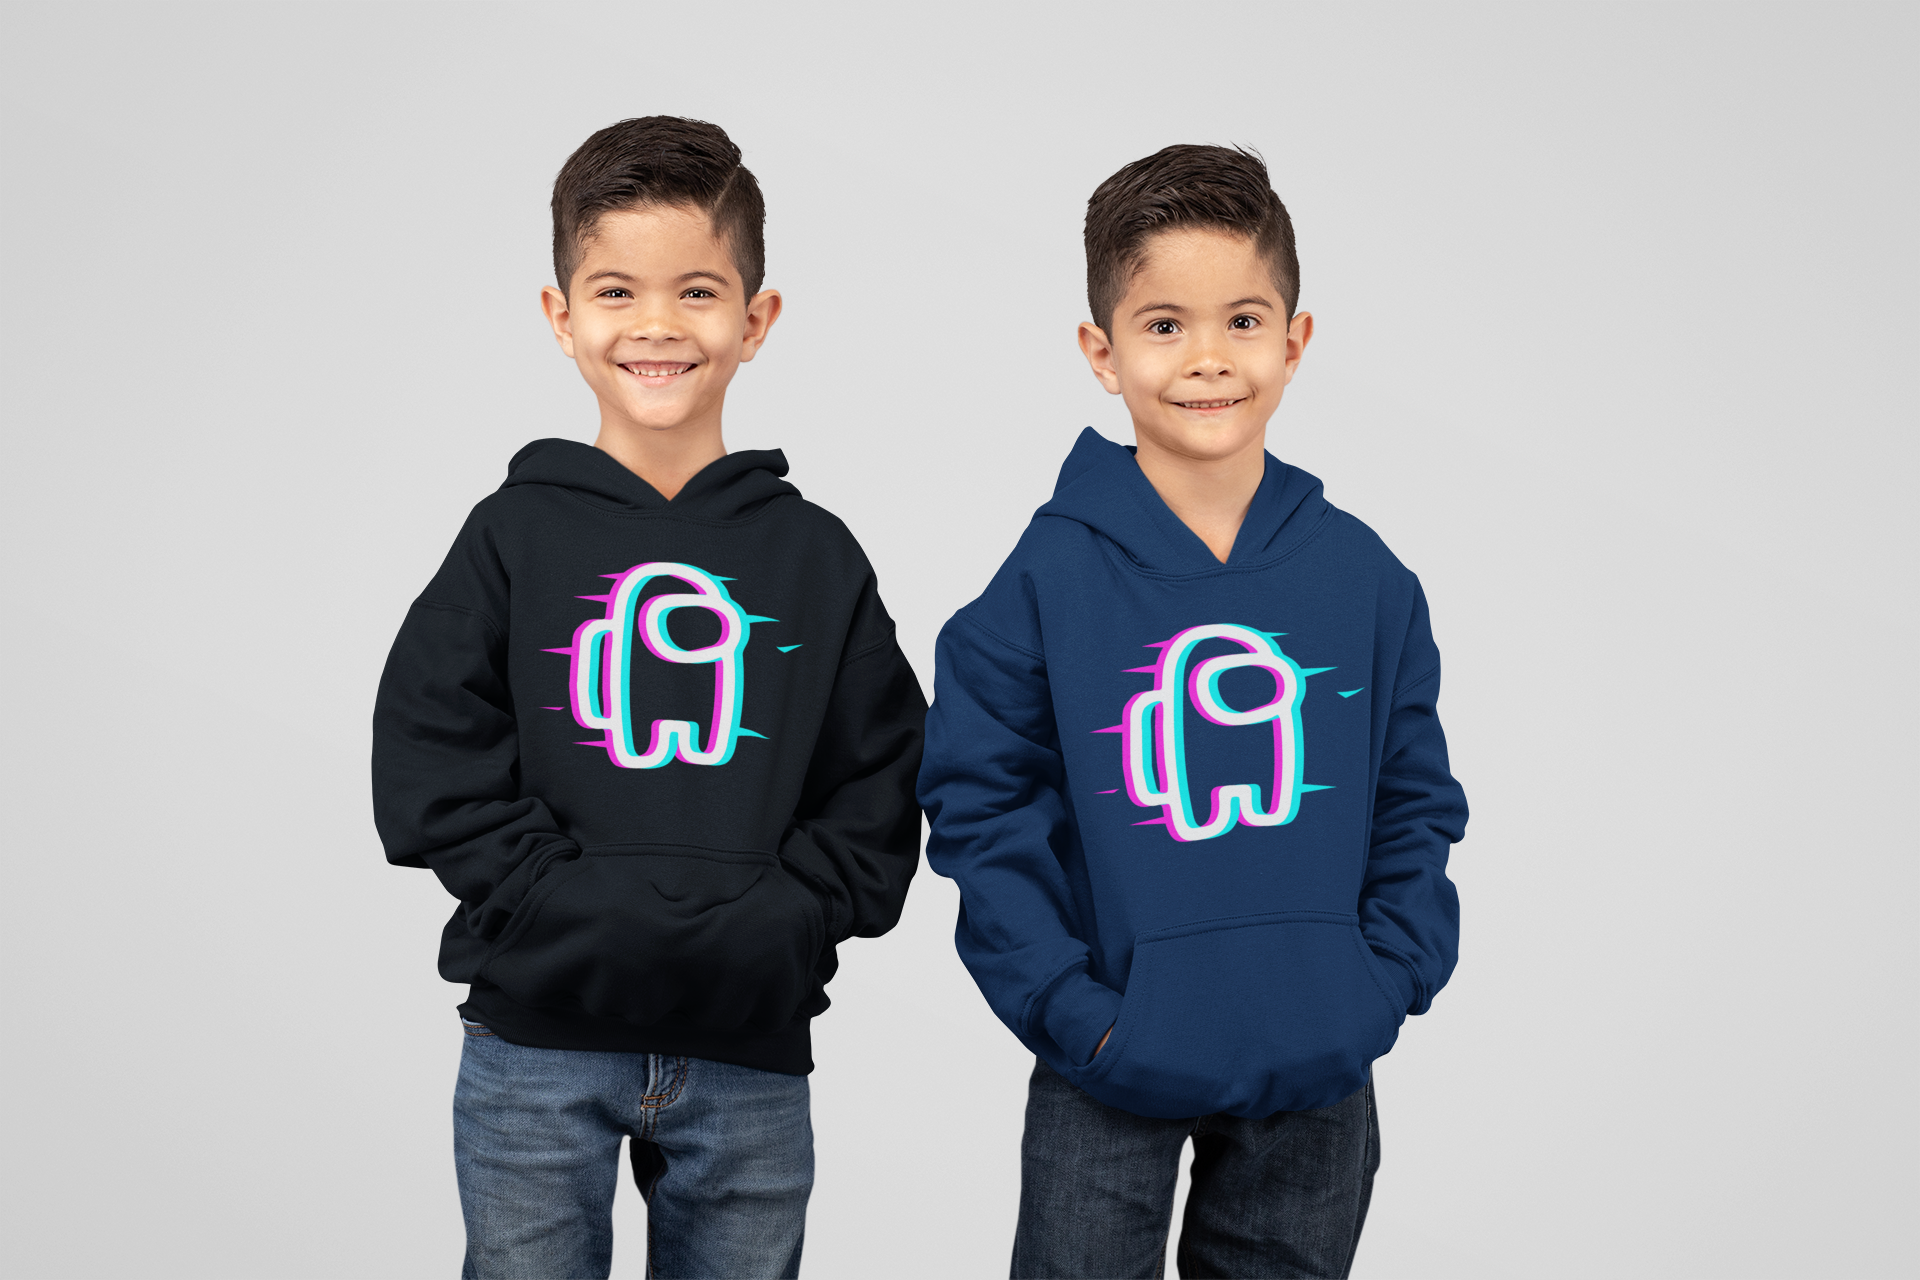 Glitch Impostor Among Us Hoodie Funny For Kids For Men Women Hoodies Sleeveless Tops Outfit Hoodie Shirt